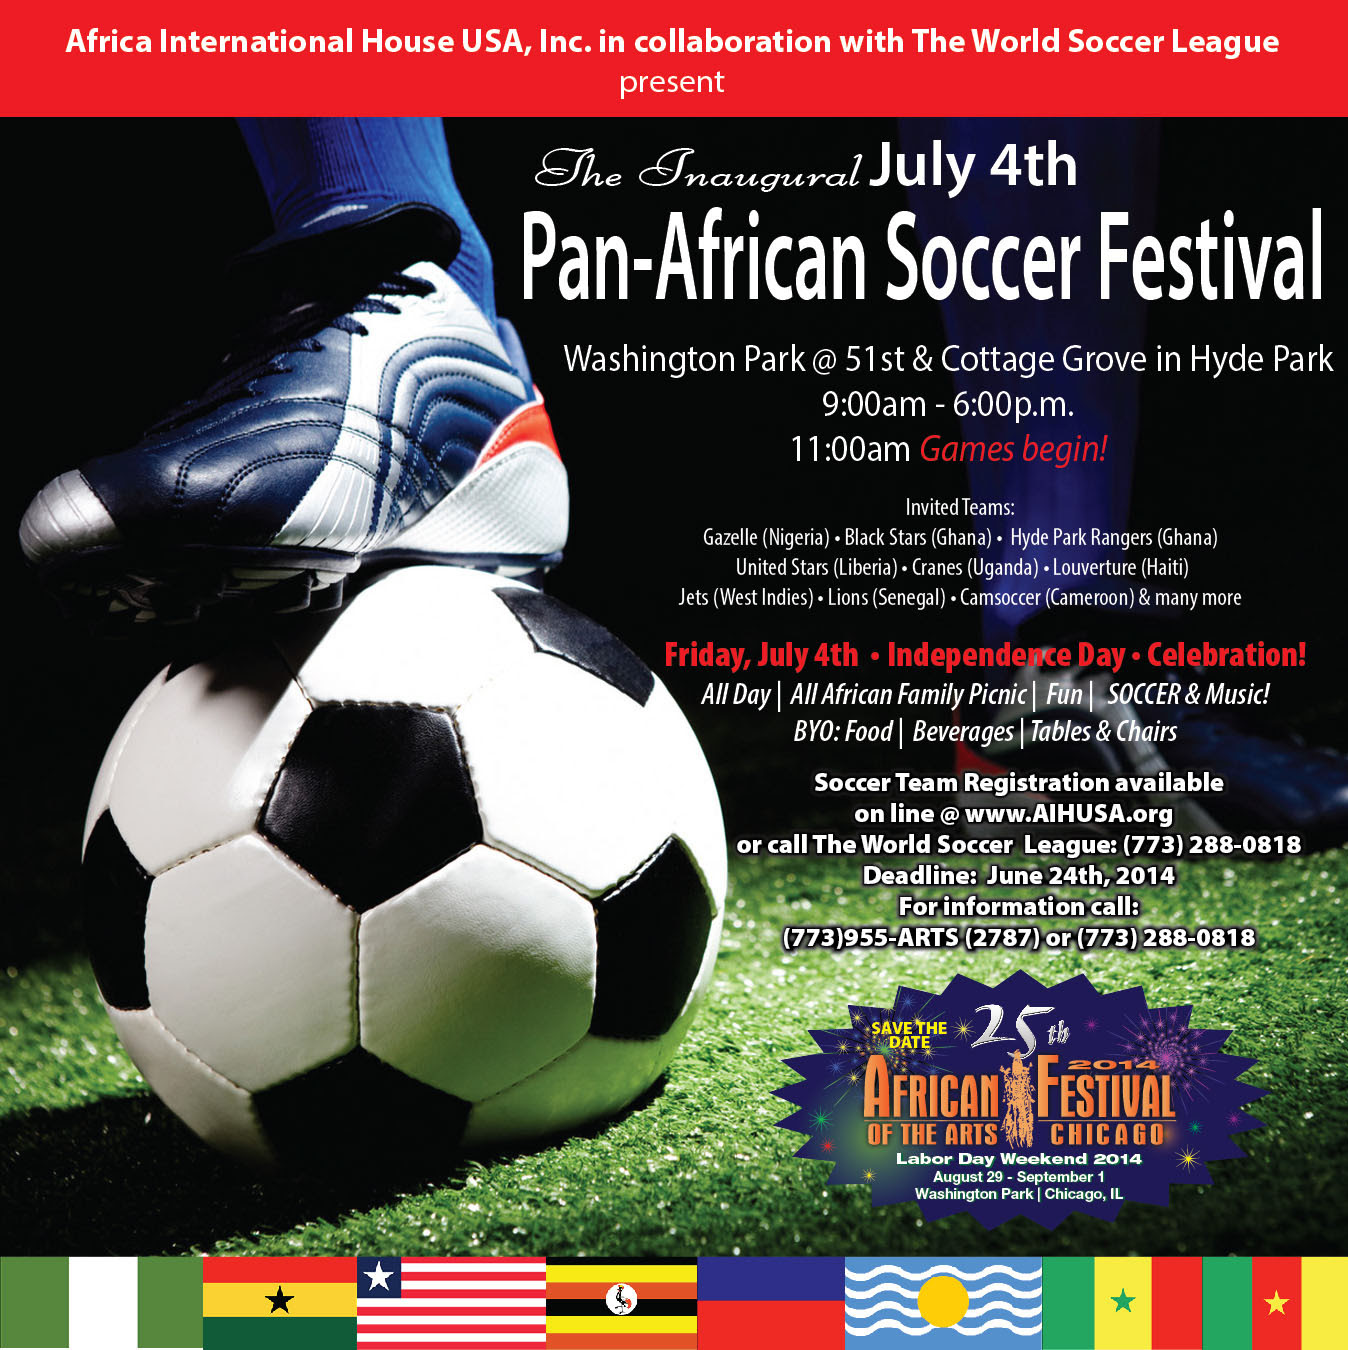 Pan African Soccer Festival Kicks Off 25th African Festival Of The Arts Chicago Season Africa International House Inc